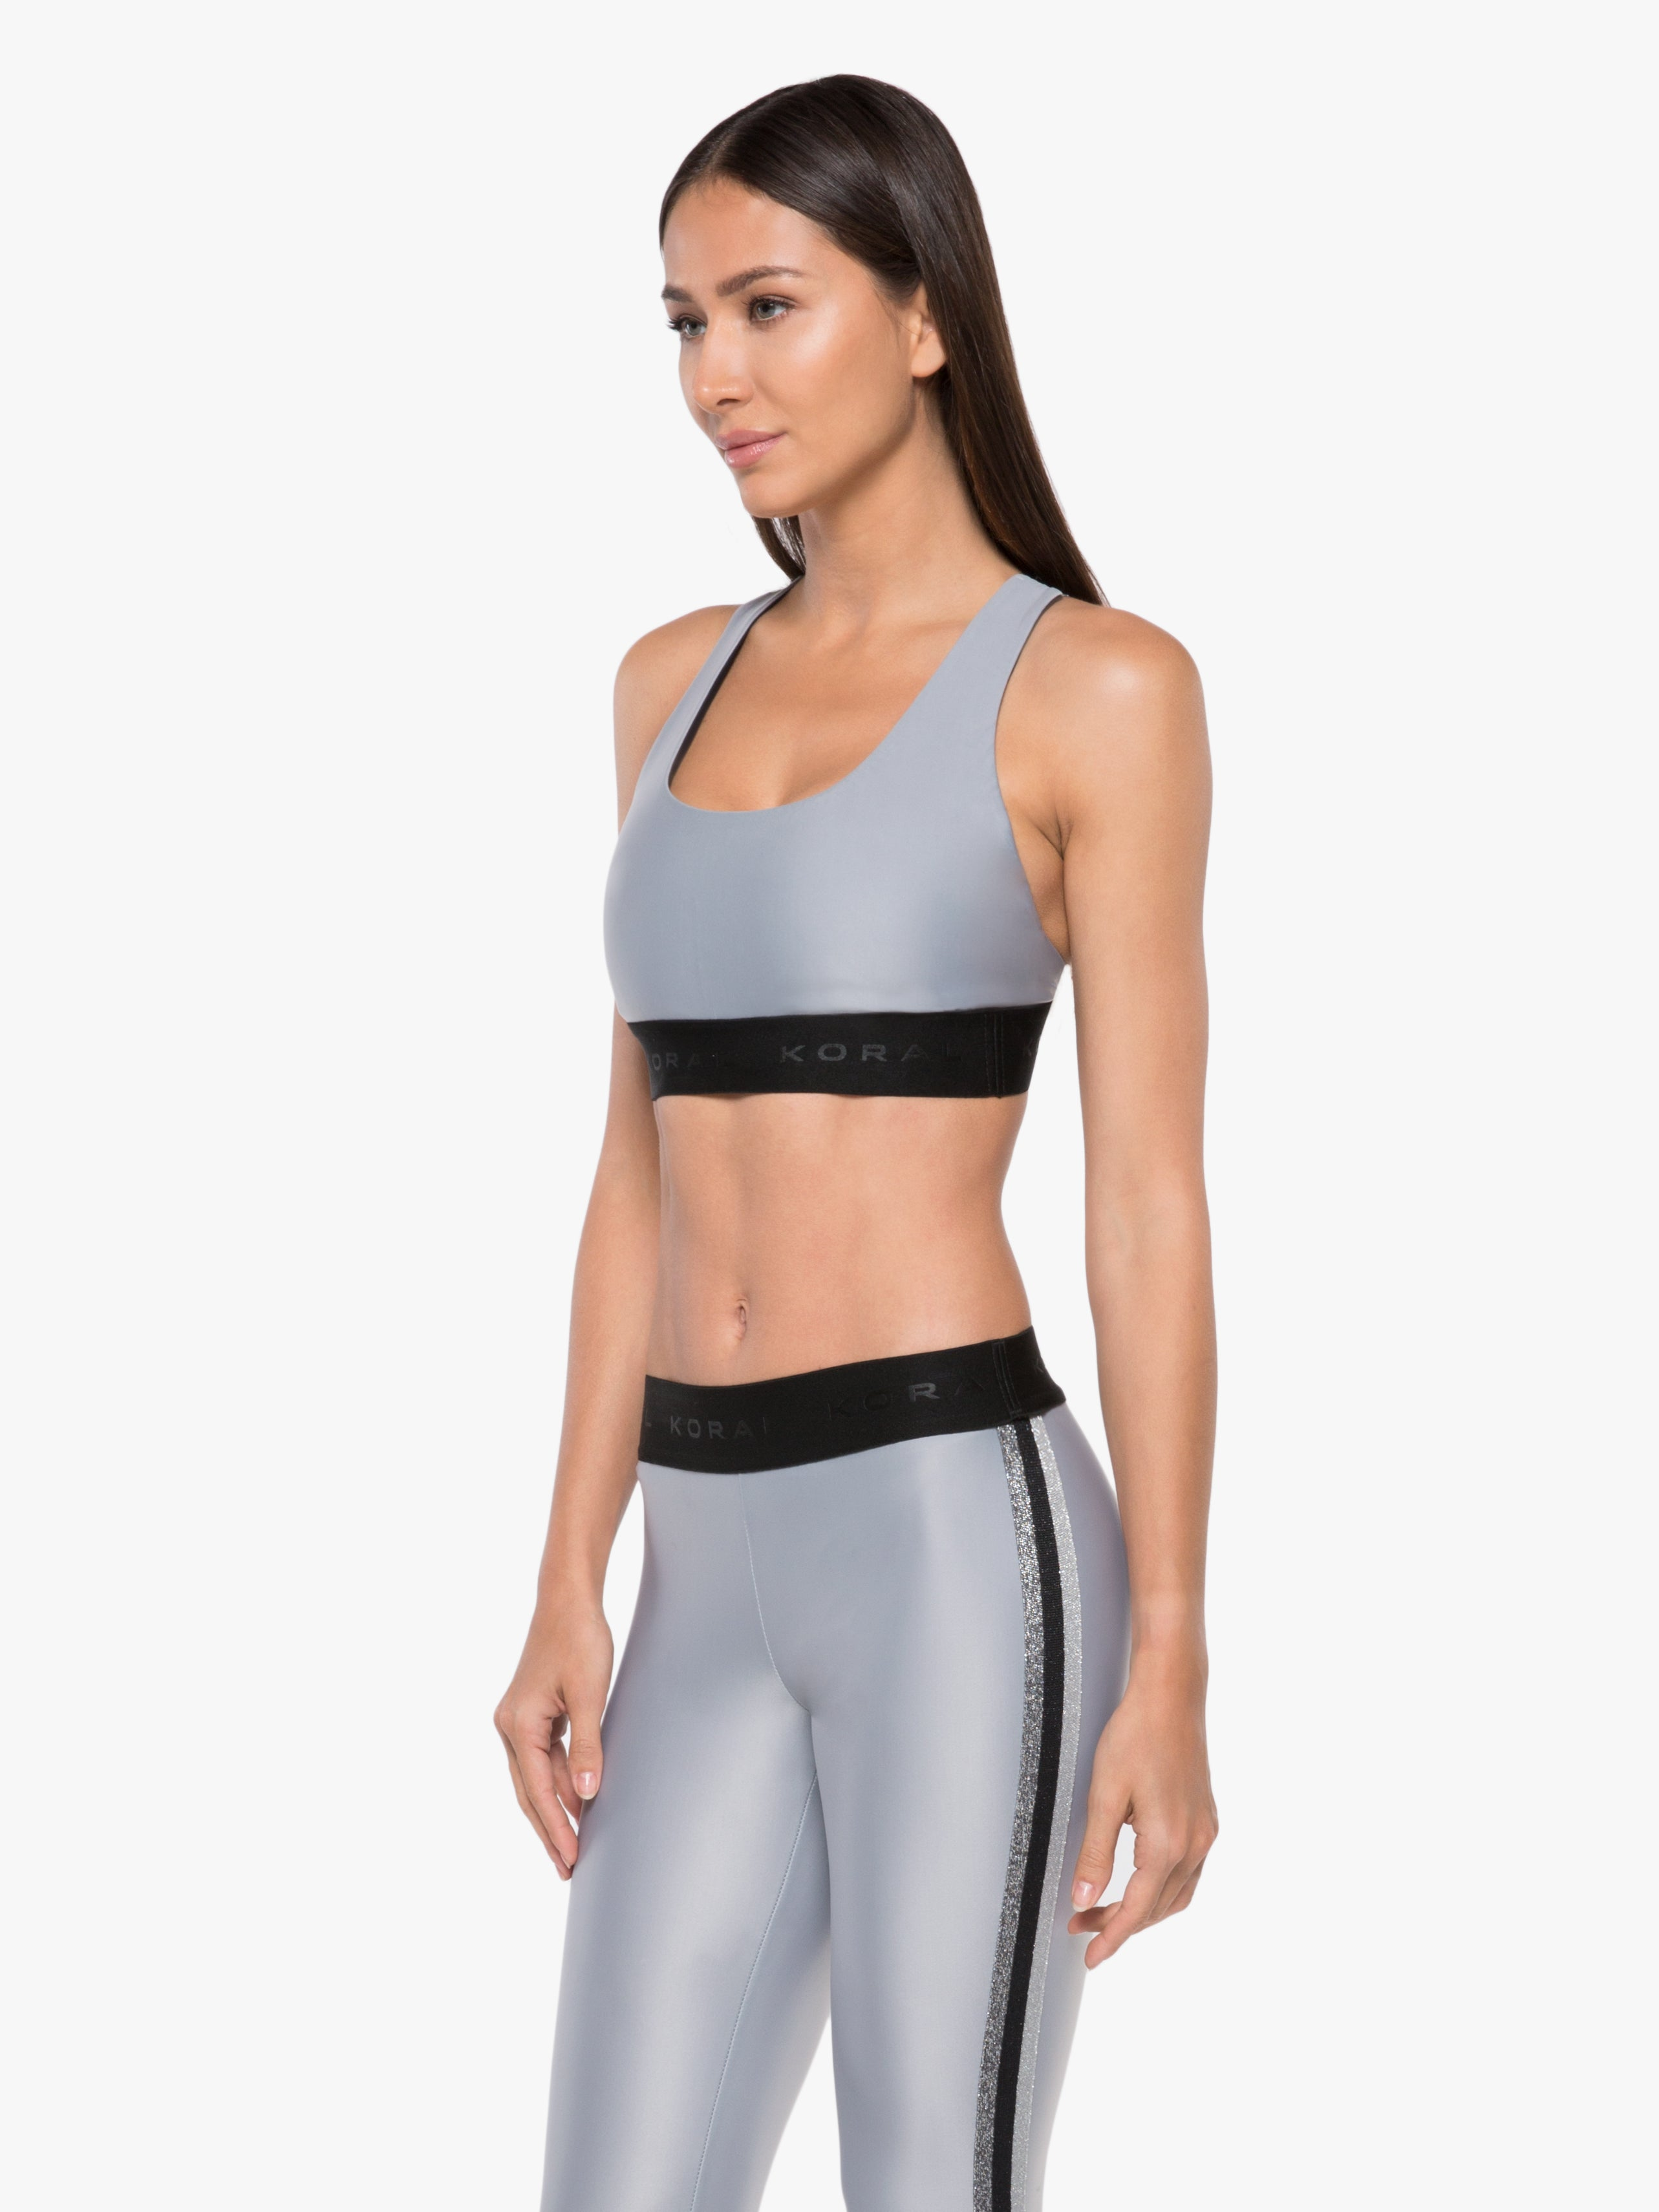 Fame Energy Sports Bra - Meteorite Grey